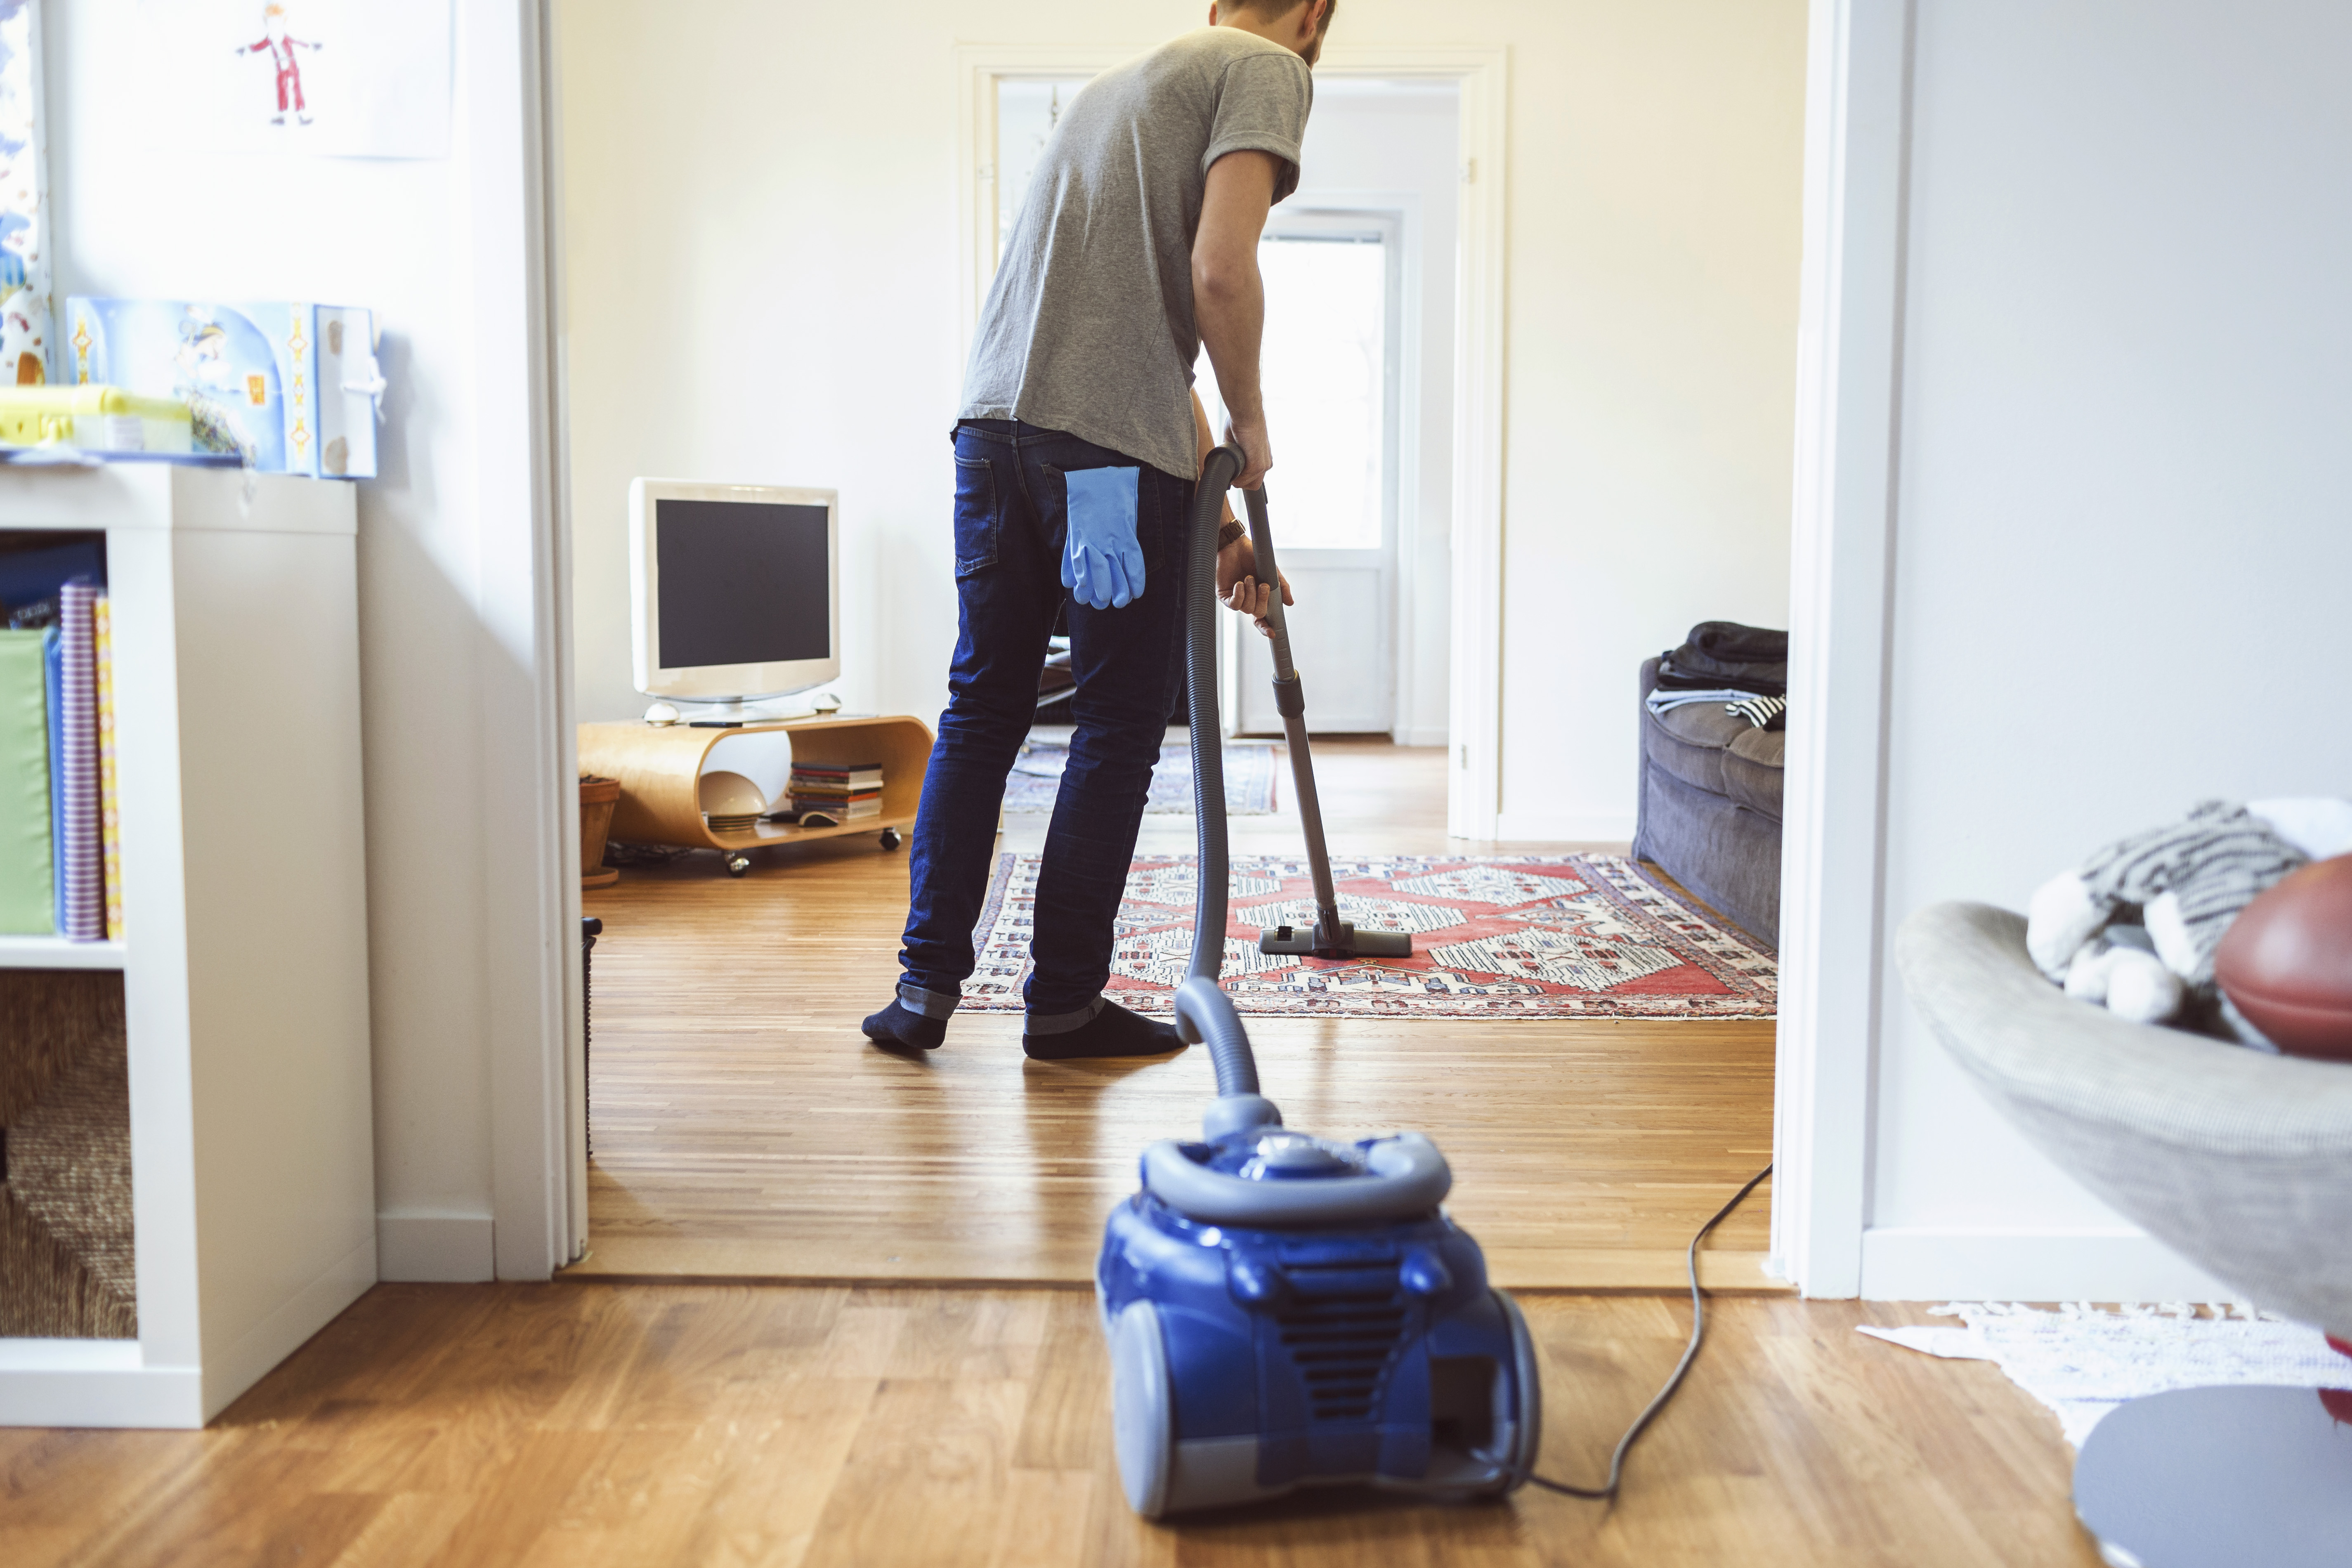 A man cleaning a house.